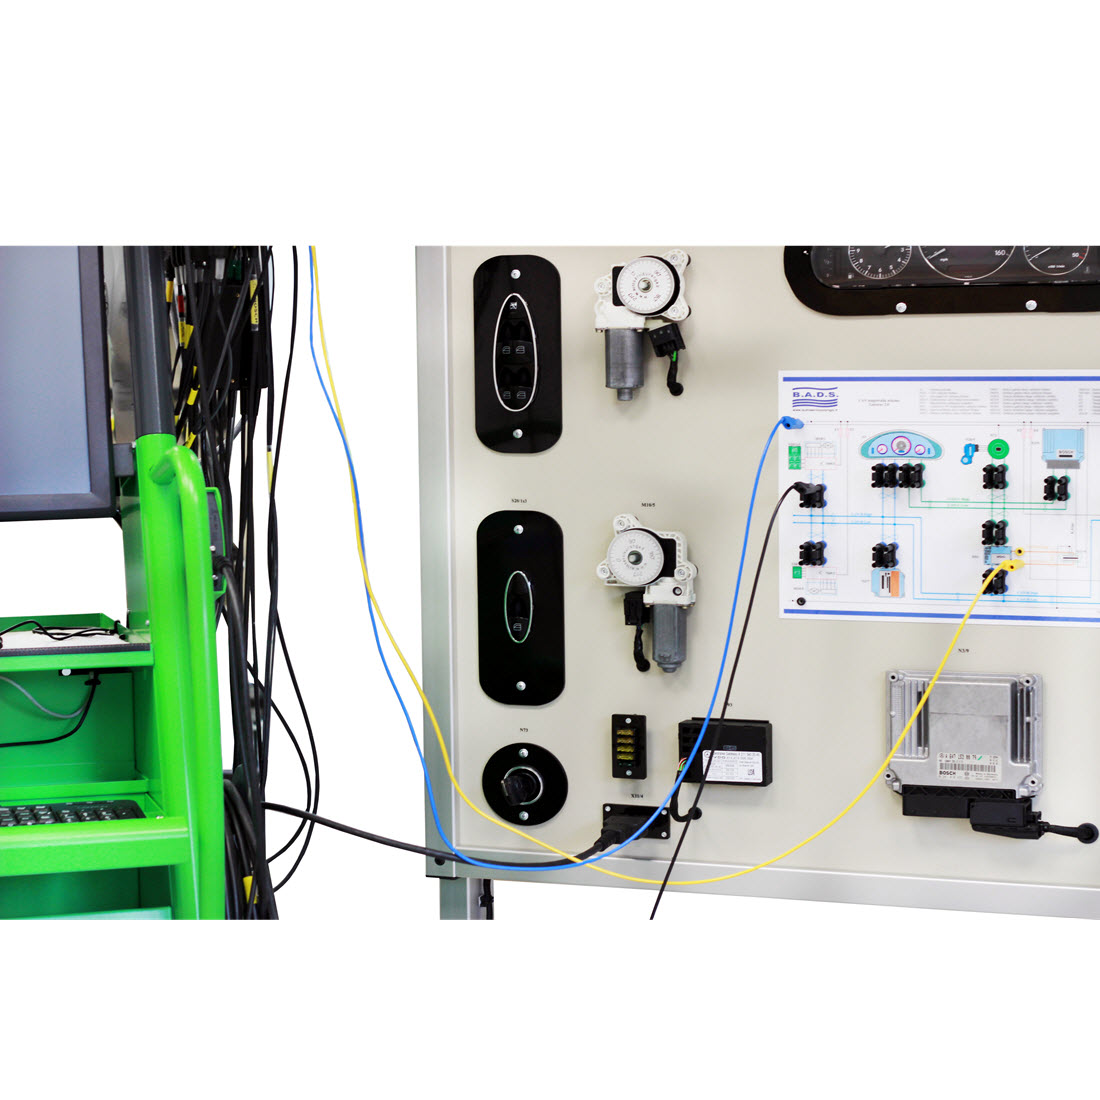 Auto Electrical Wiring Board Diagrams Img And System Training Simple Diagram Schema Kits